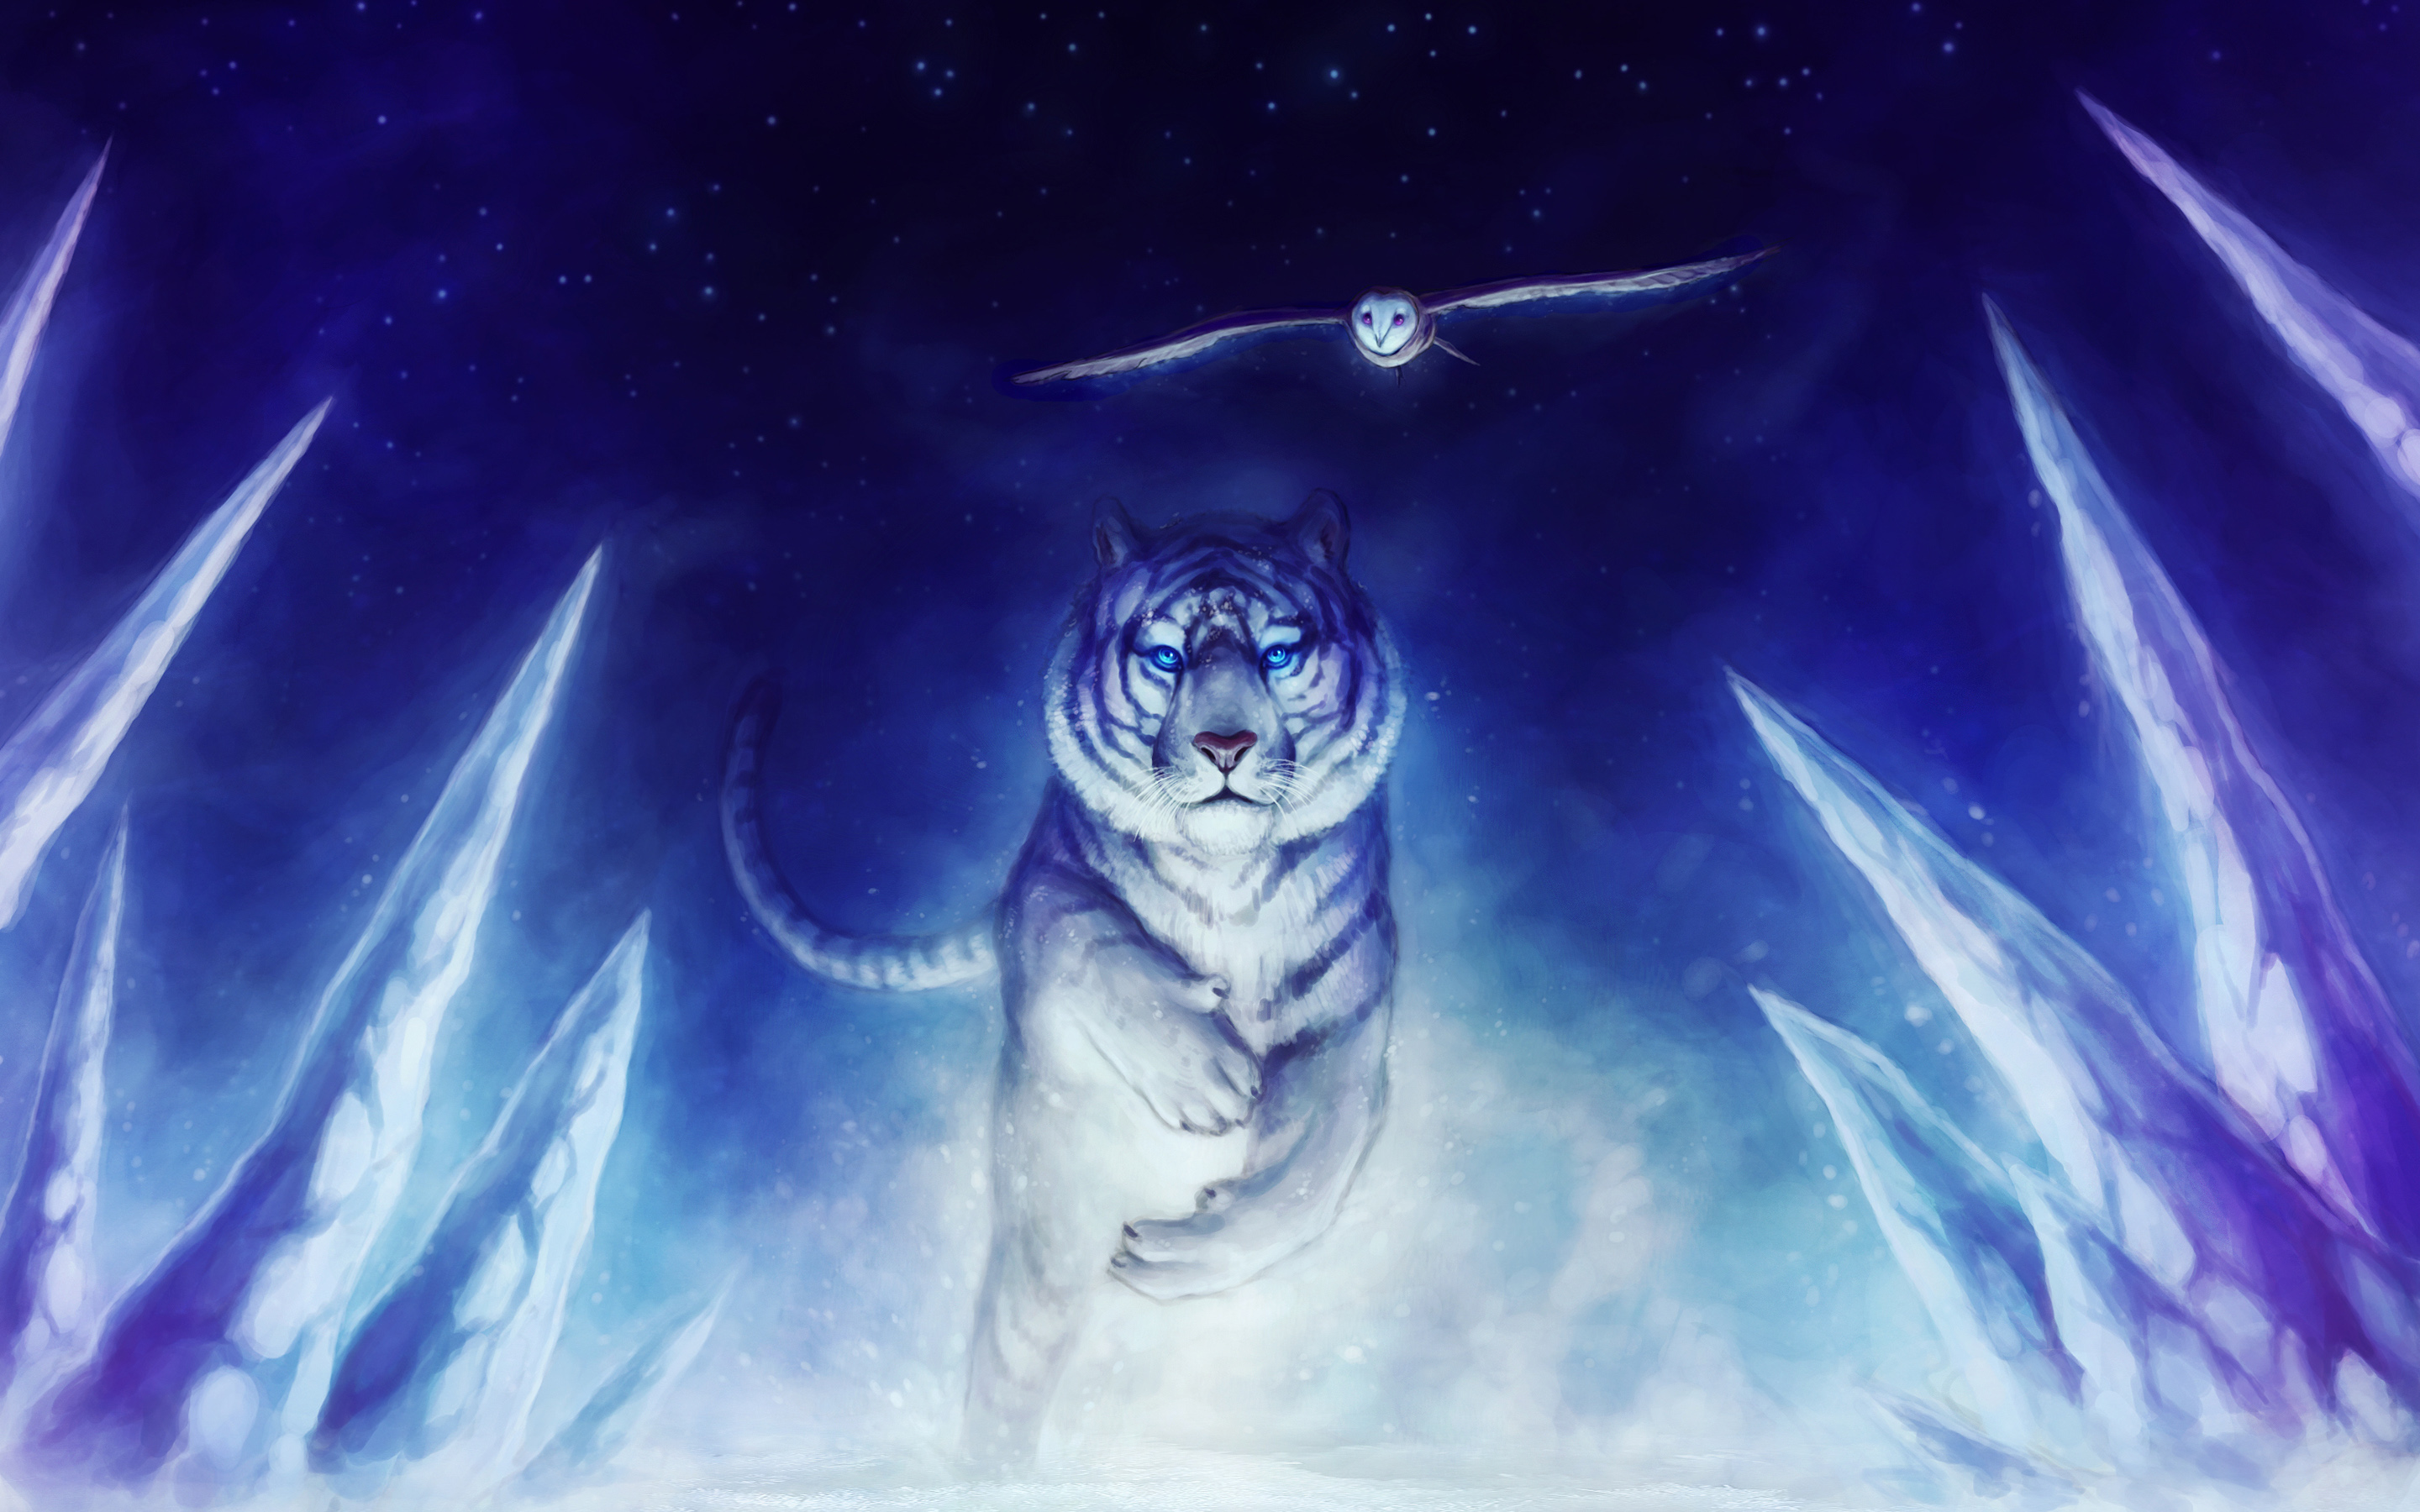 White Tiger Owl Art Exclusive HD Wallpapers 2205 2880x1800